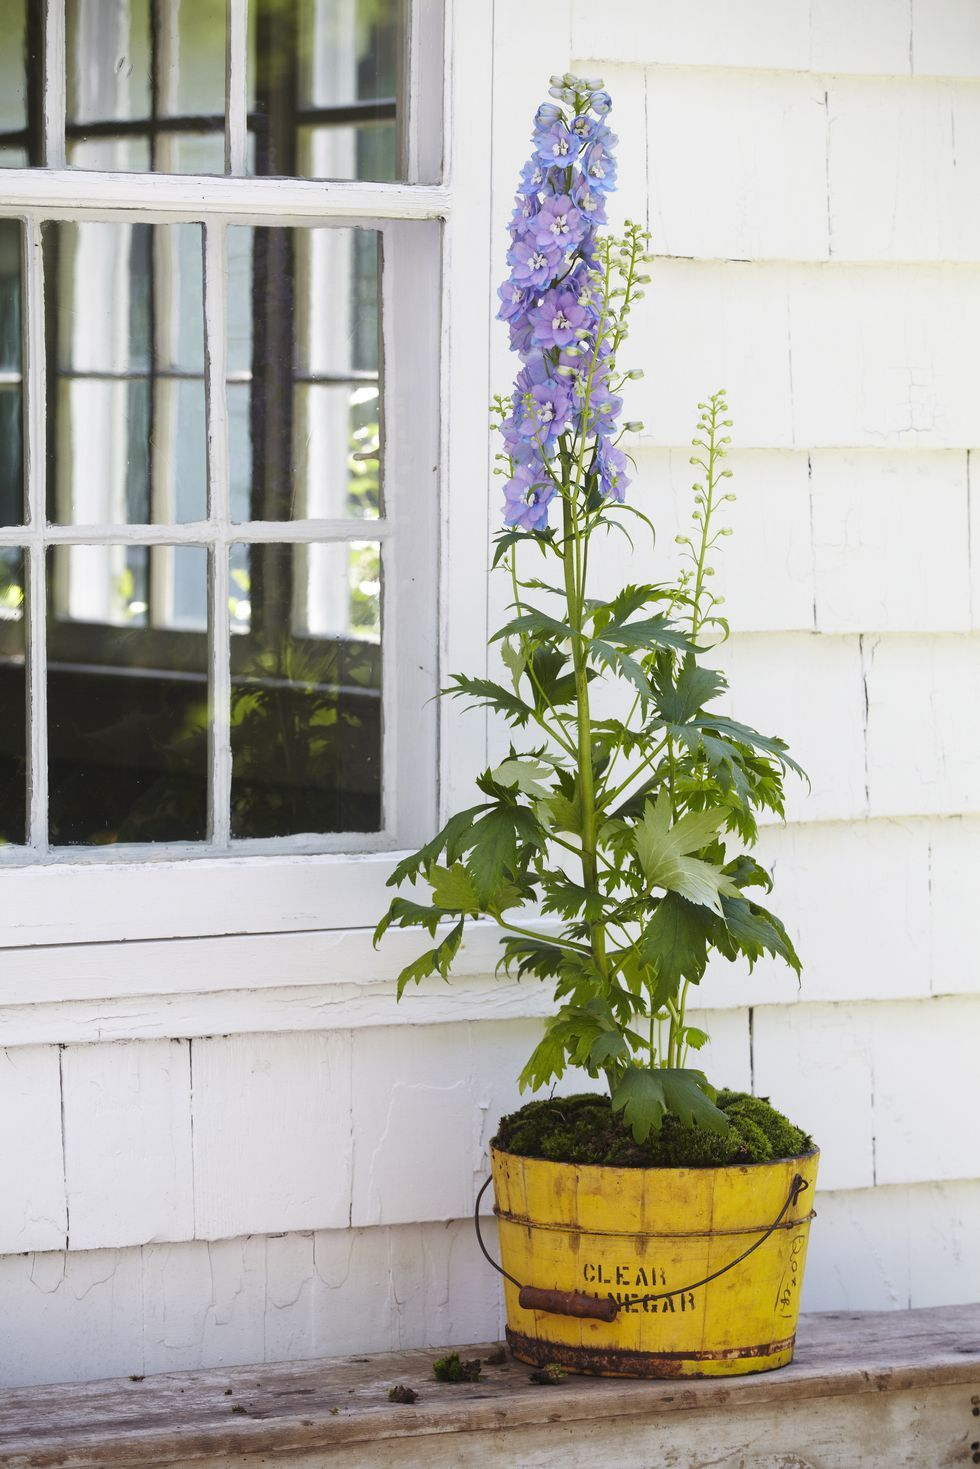 How To Decorate With Annuals And Perennials Inside The Home